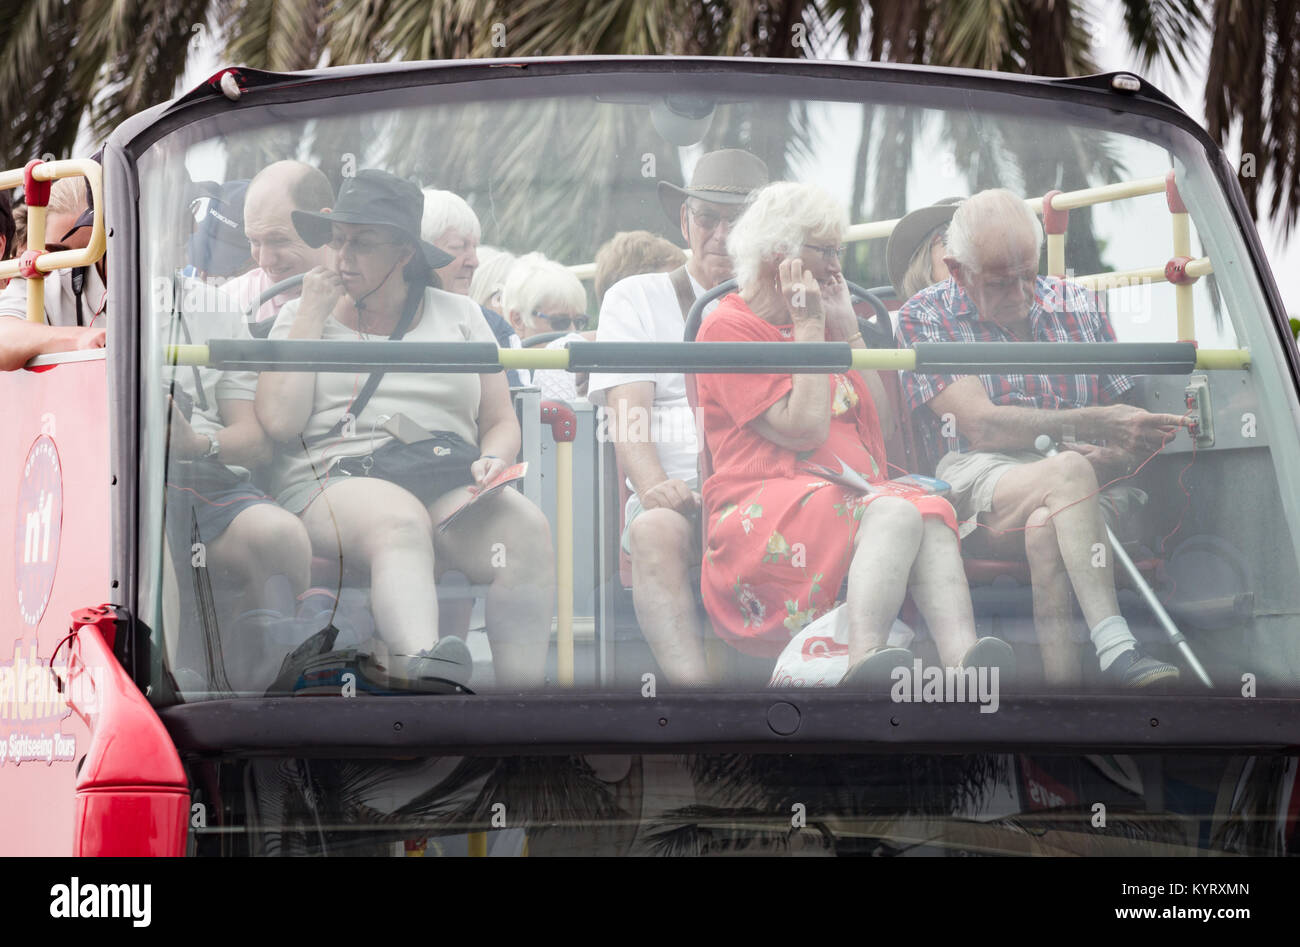 British tourists on city sightseeing bus in Las palmas, the capital of Gran Canaria, Canary Islands, Spain - Stock Image